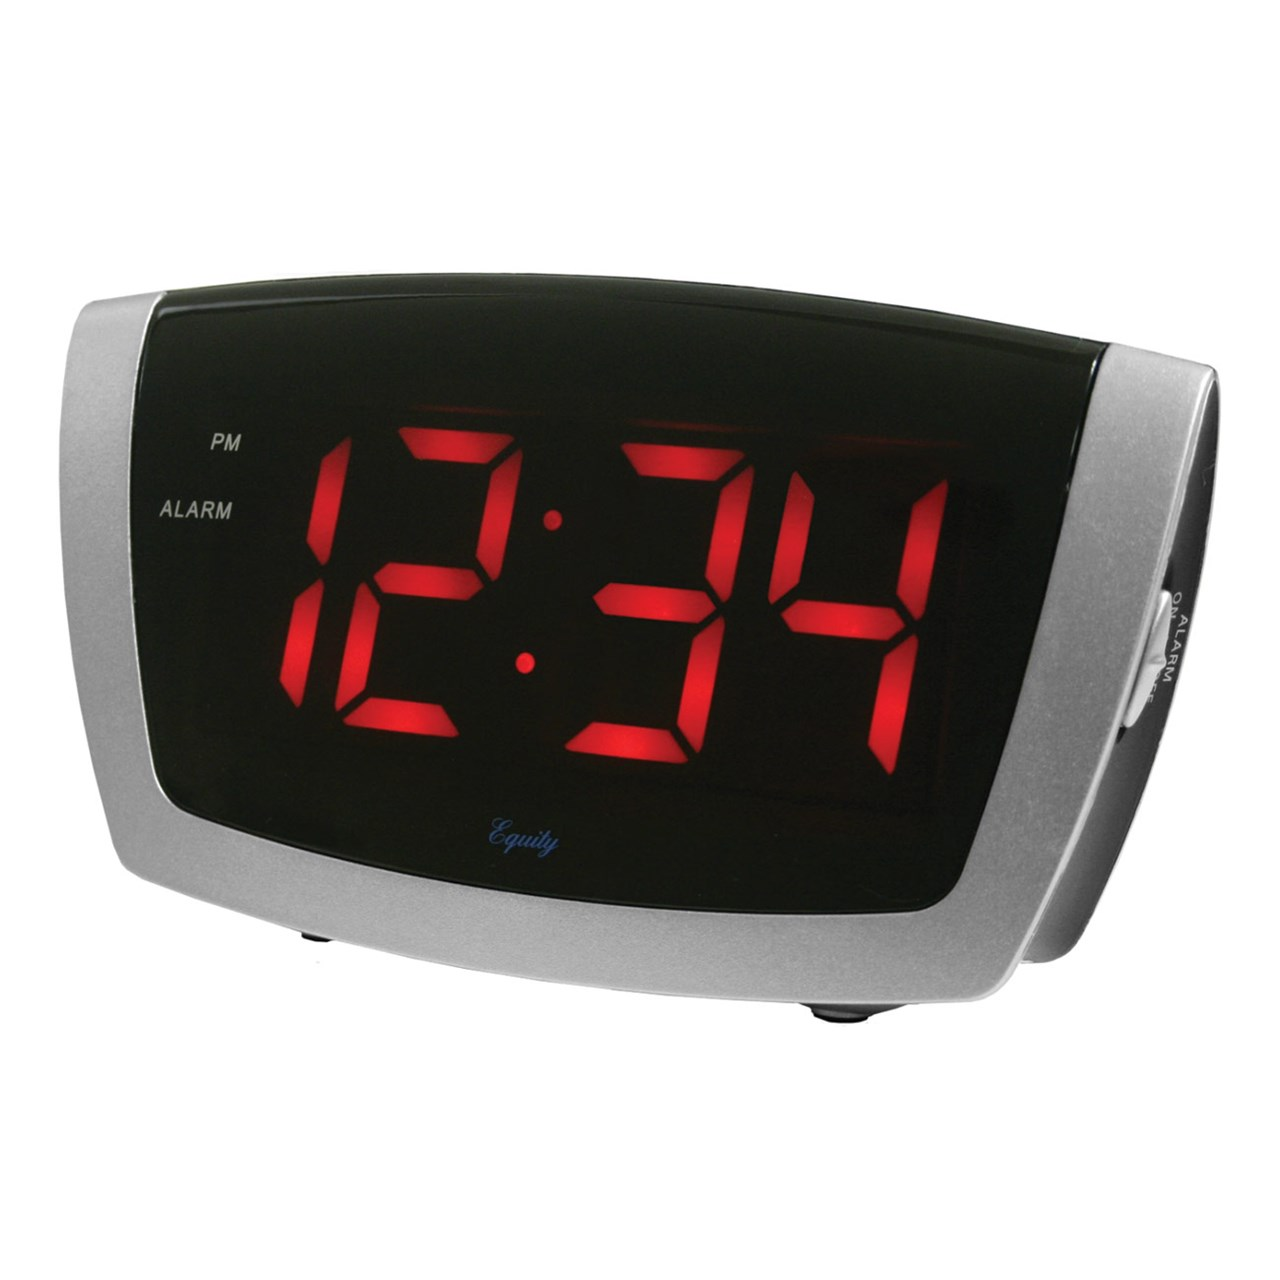 Maxiaids low vision clocks blind accessories large display clock digital alarm clock with 18 inch jumbo led amipublicfo Image collections